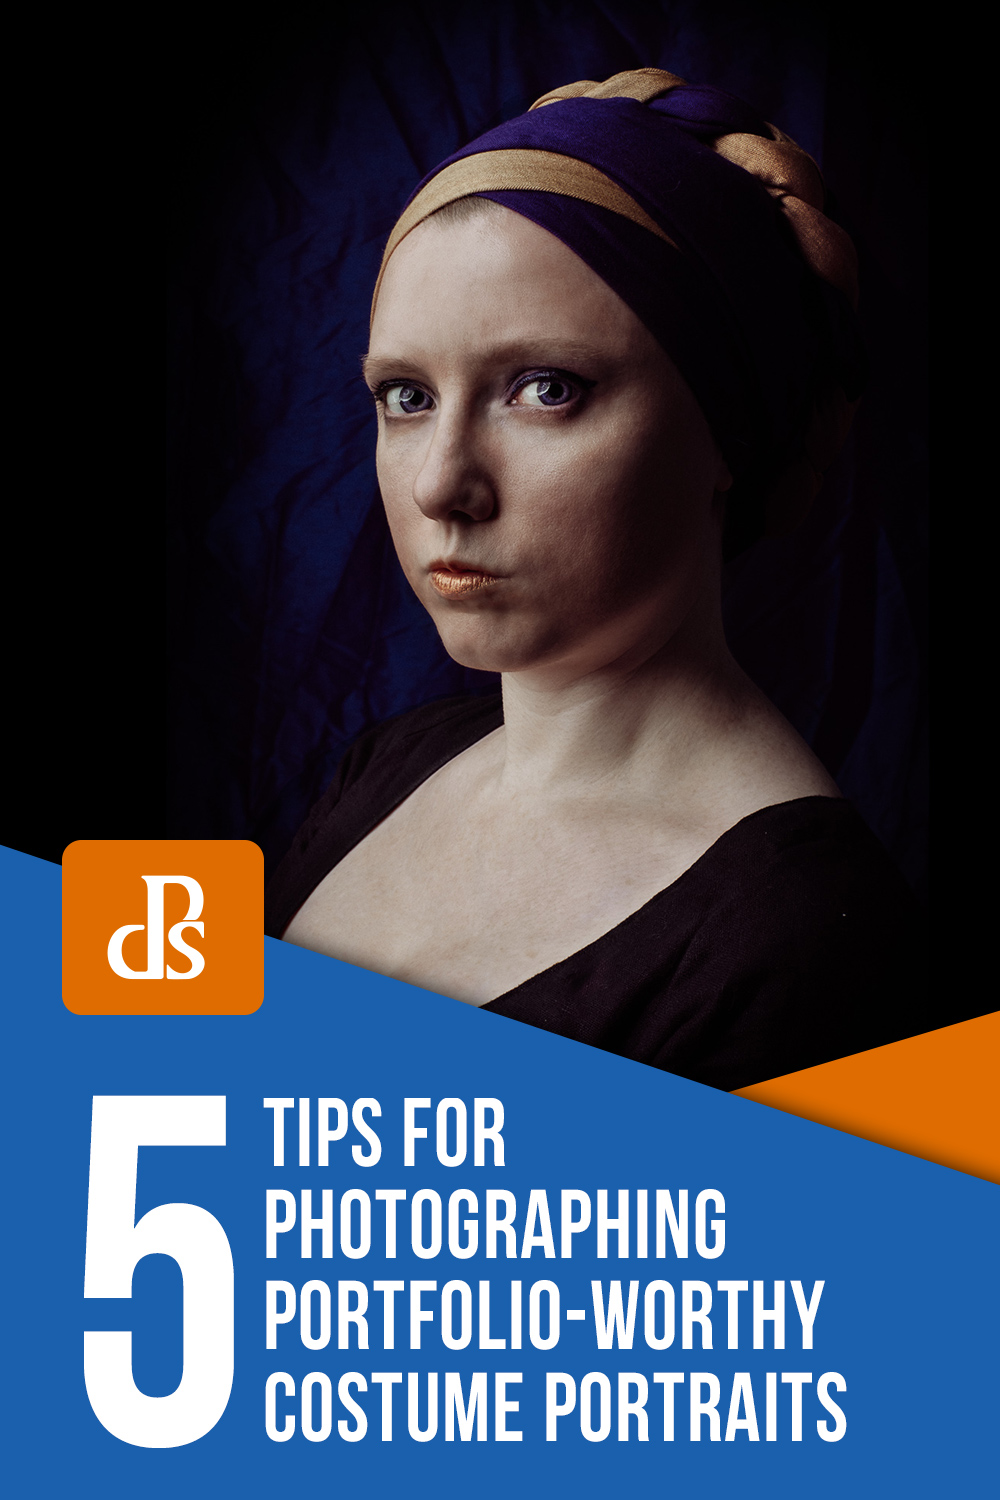 5 Tips for Photographing Portfolio-Worthy Costume Portraits